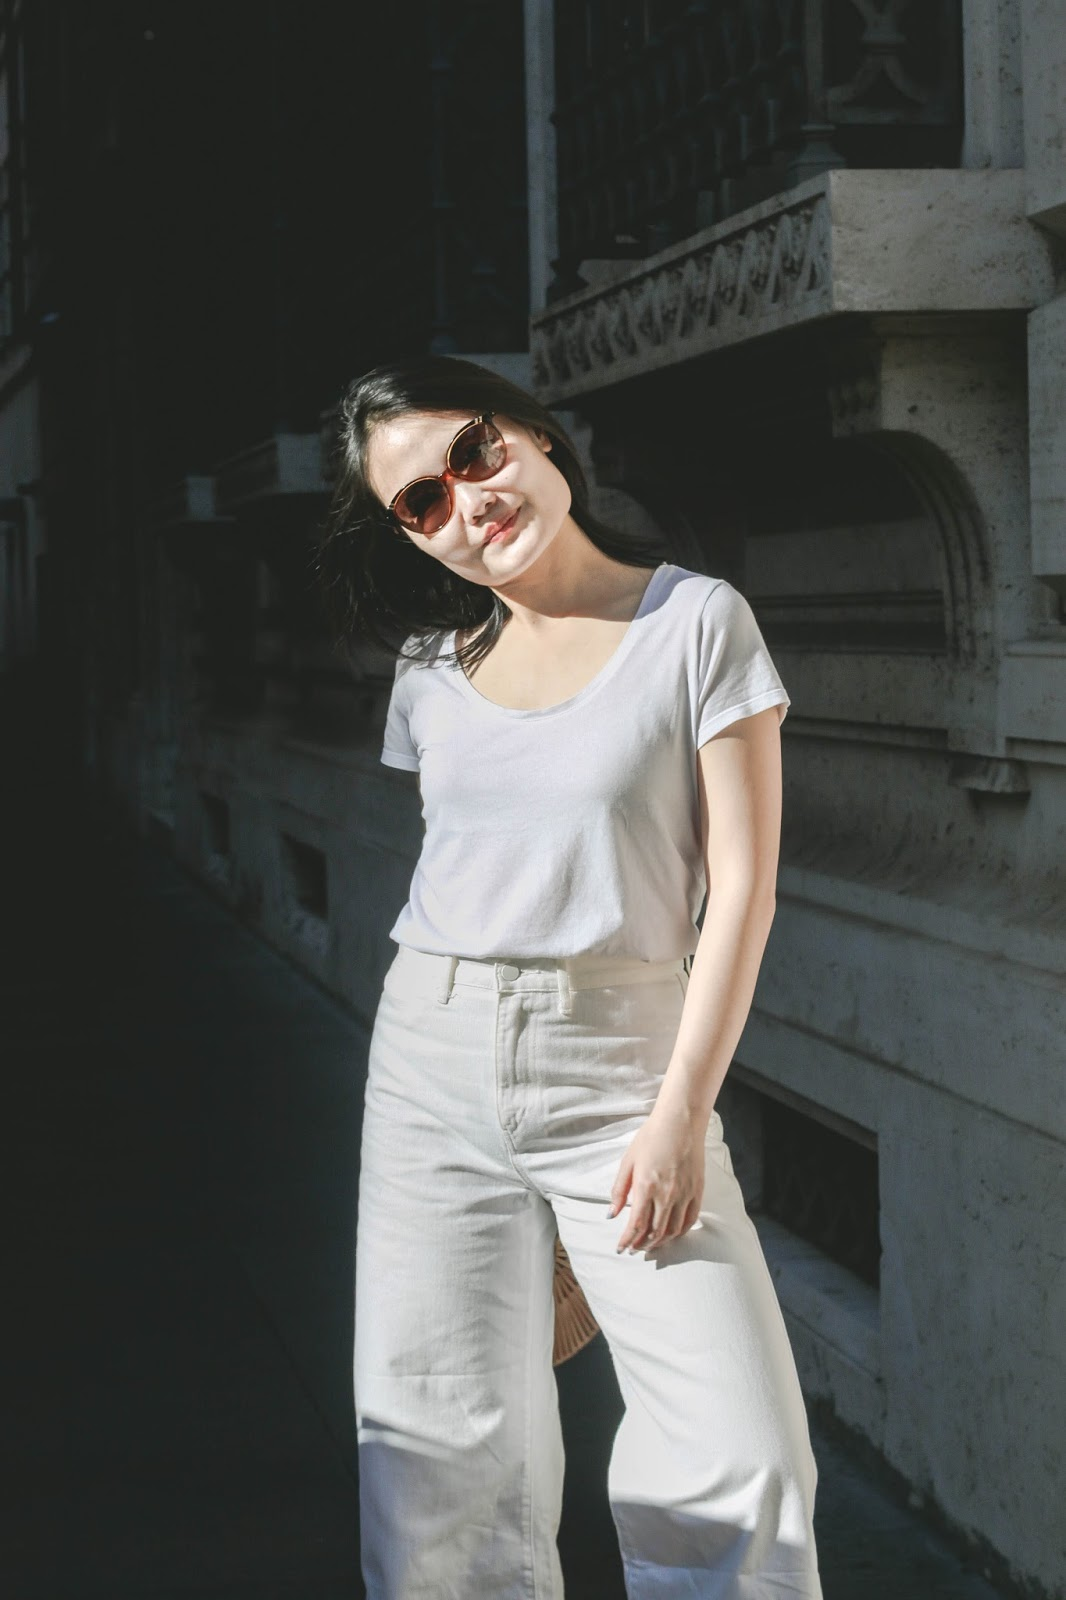 singapore blogger italy summer holiday outfit lookbook style street photography look book europe fashion